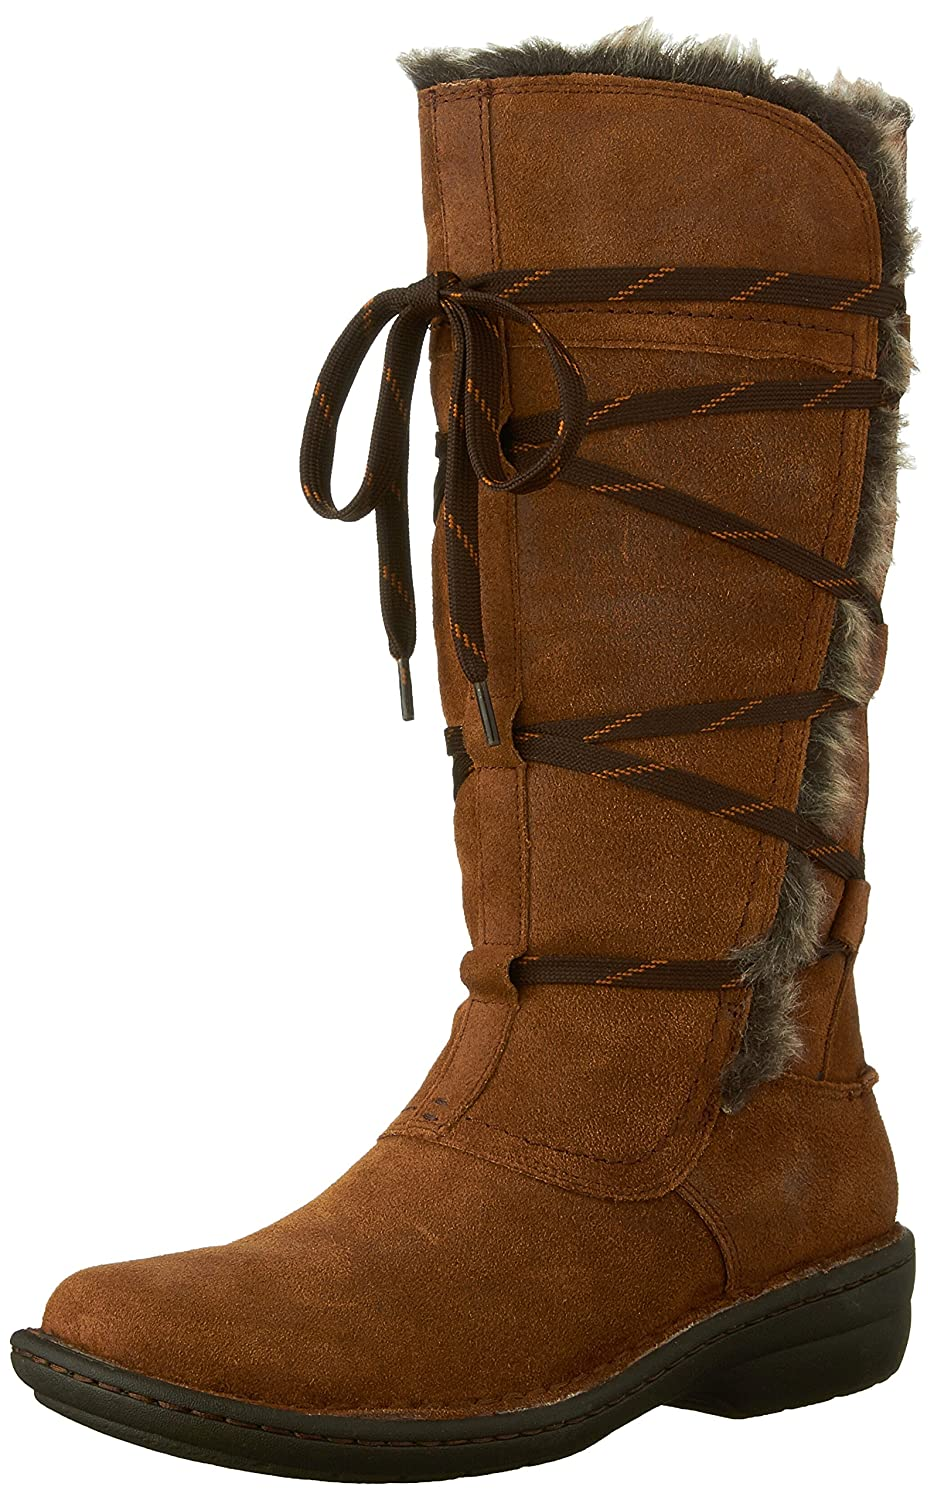 """chic Clarks """"Avington Hayes"""" Tall Cold Weather Boots"""